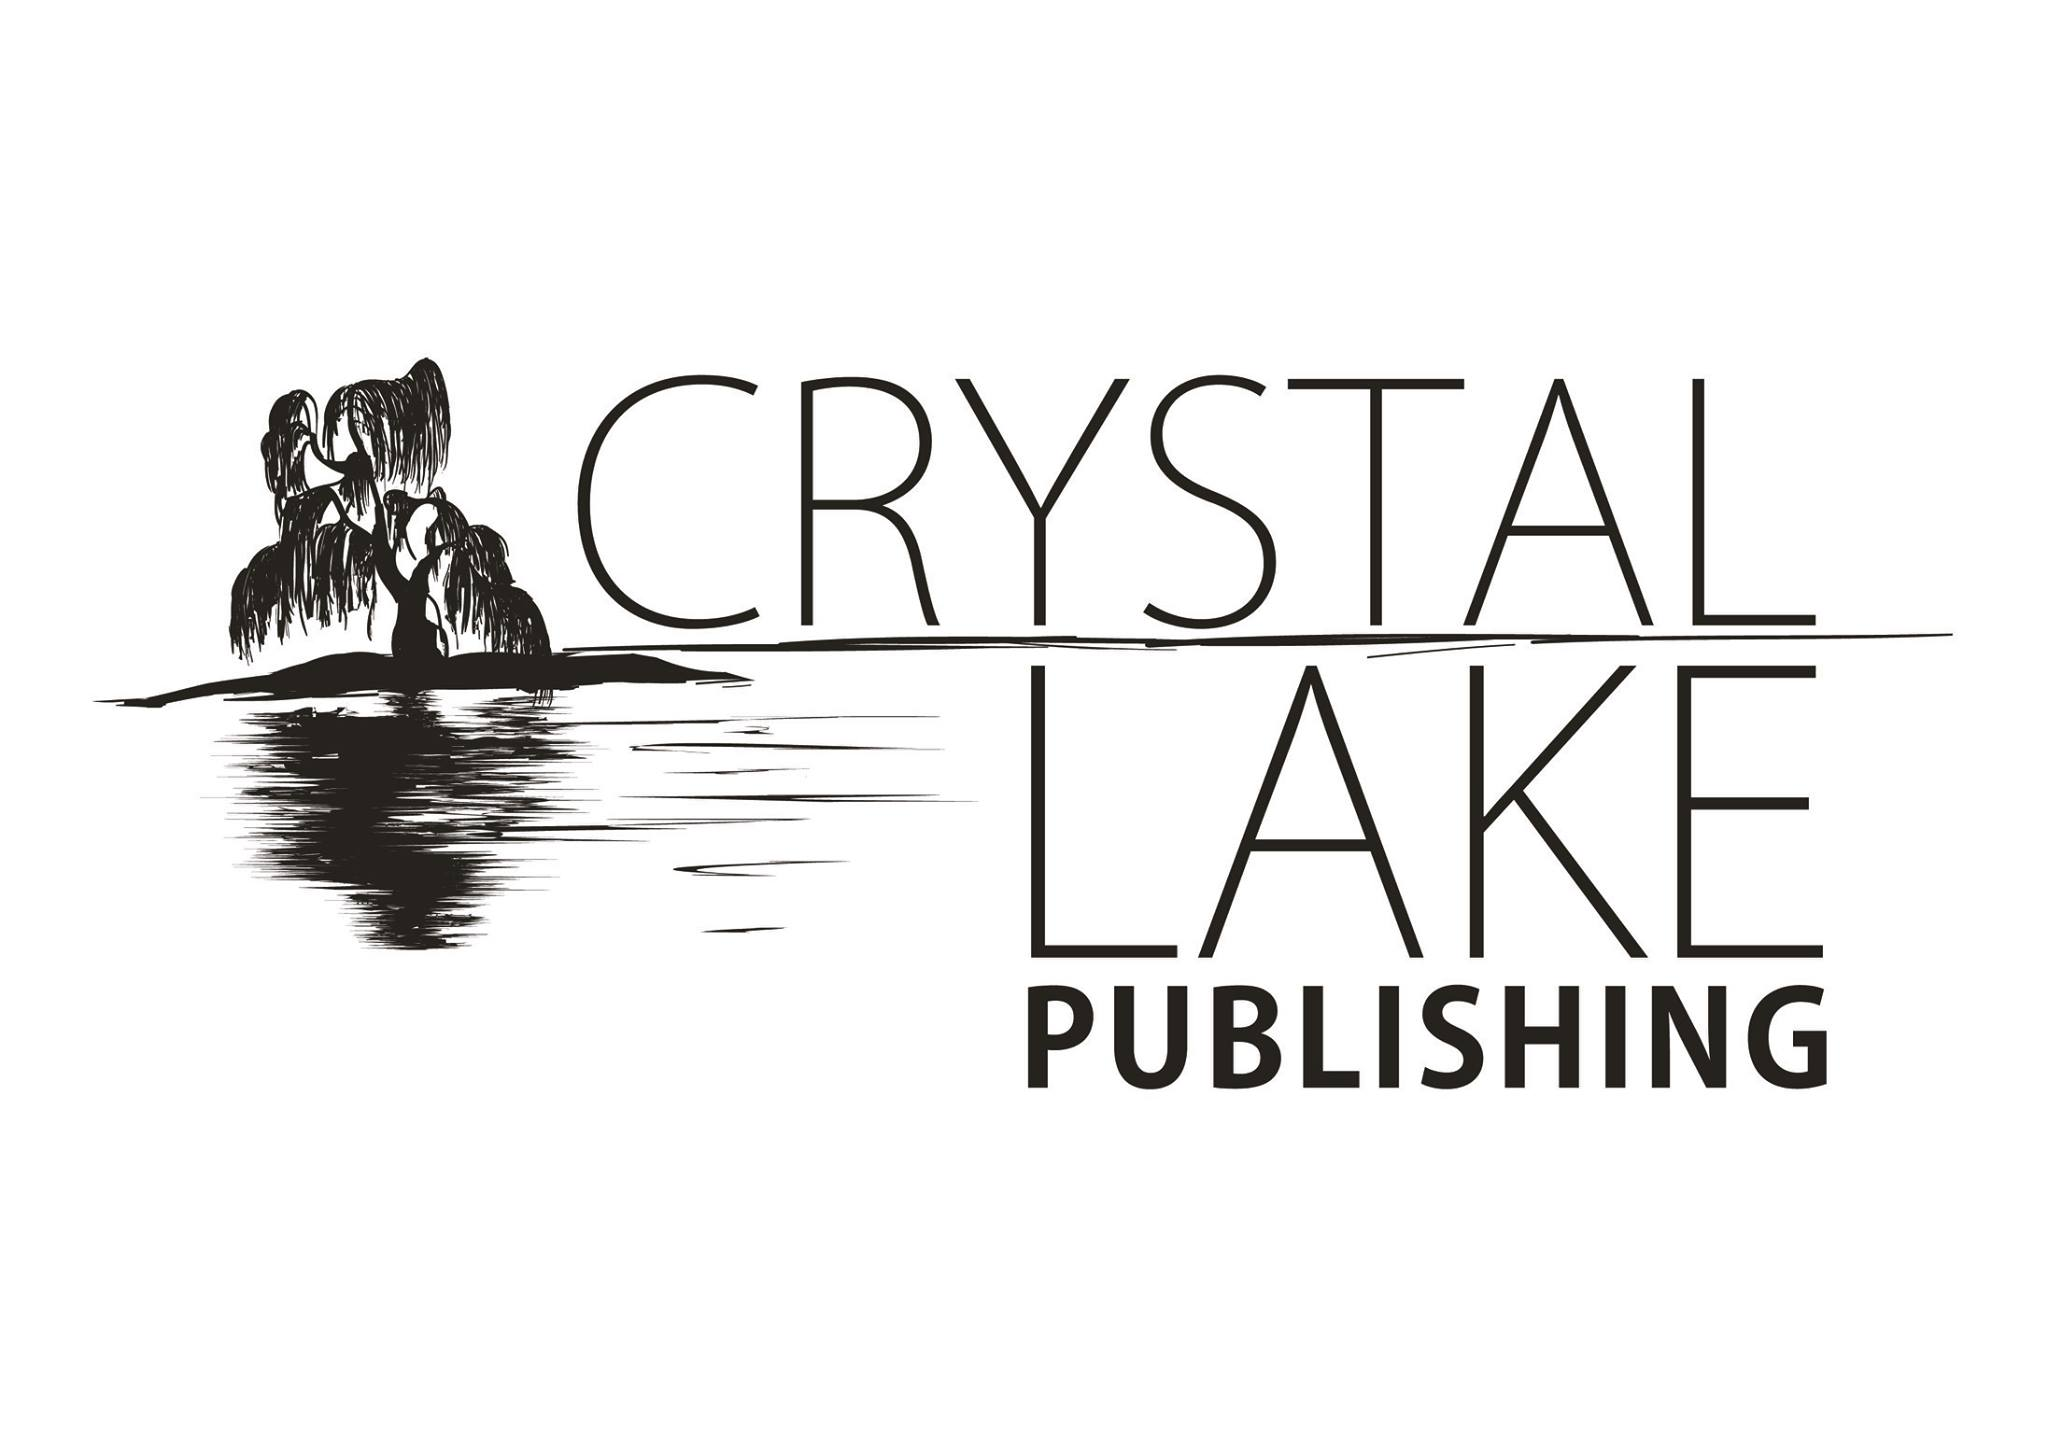 press release  crystal lake publishing is looking for